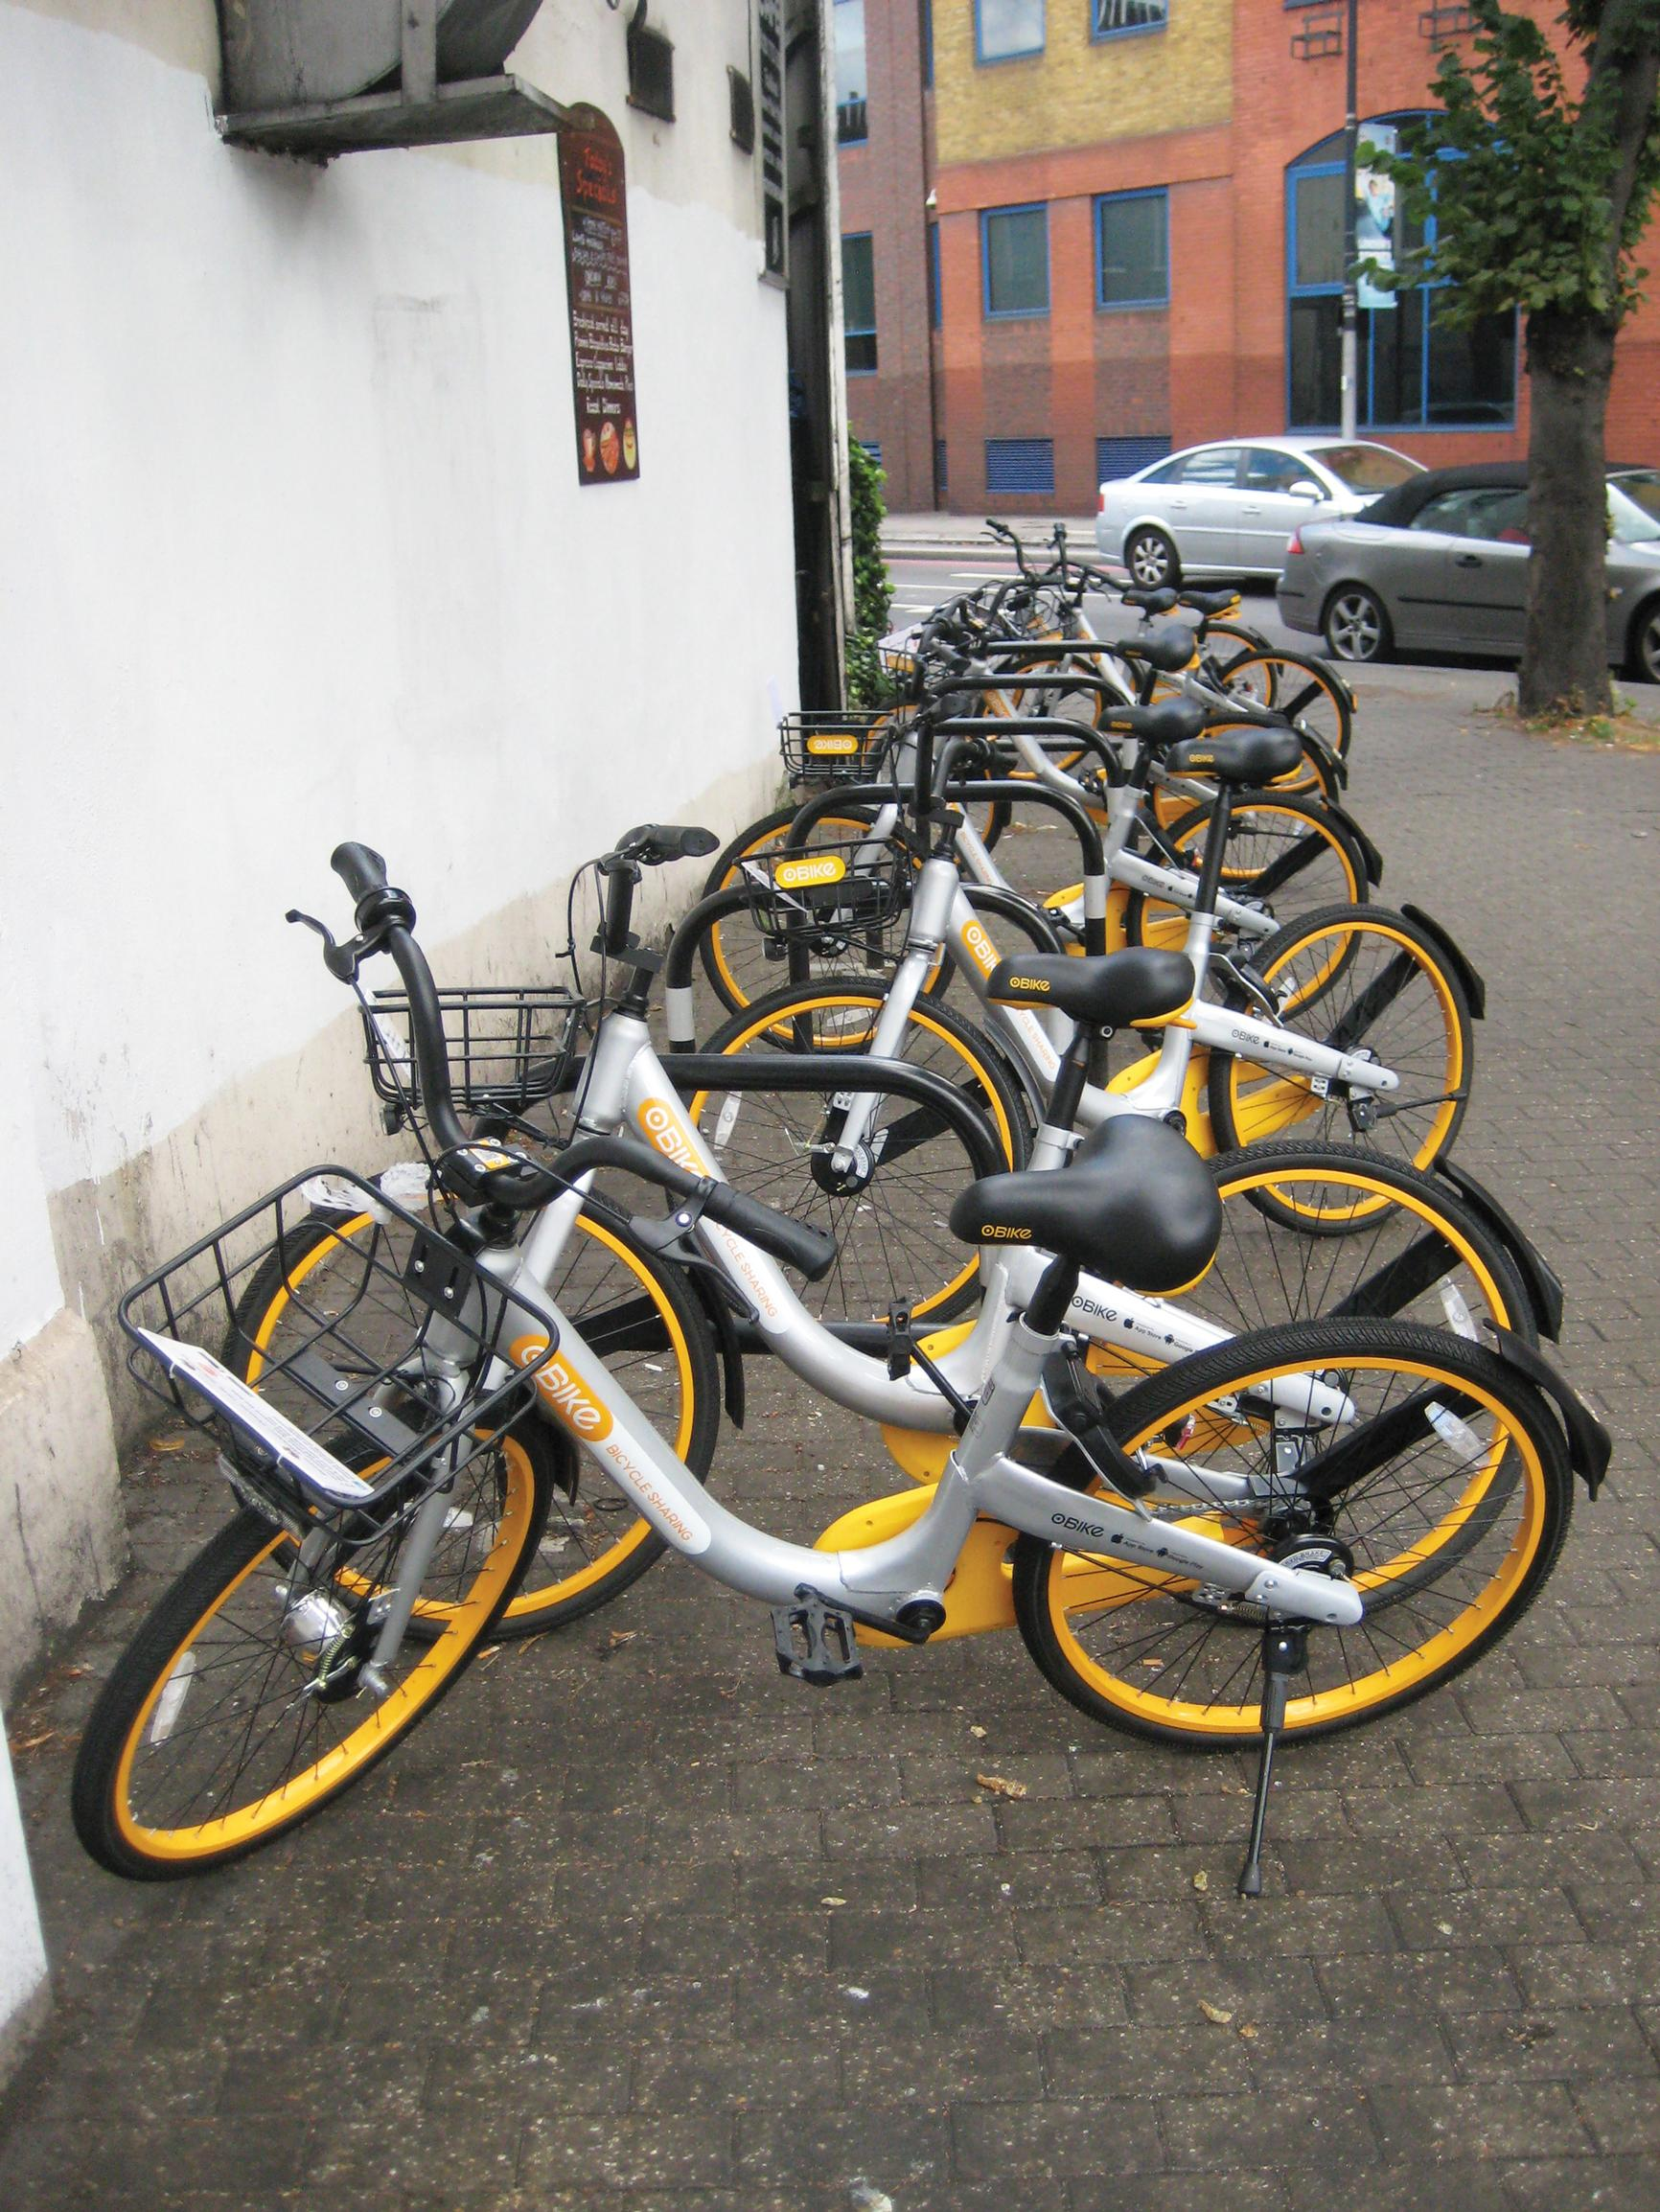 Work with us, authorities urge dockless bike hire operators